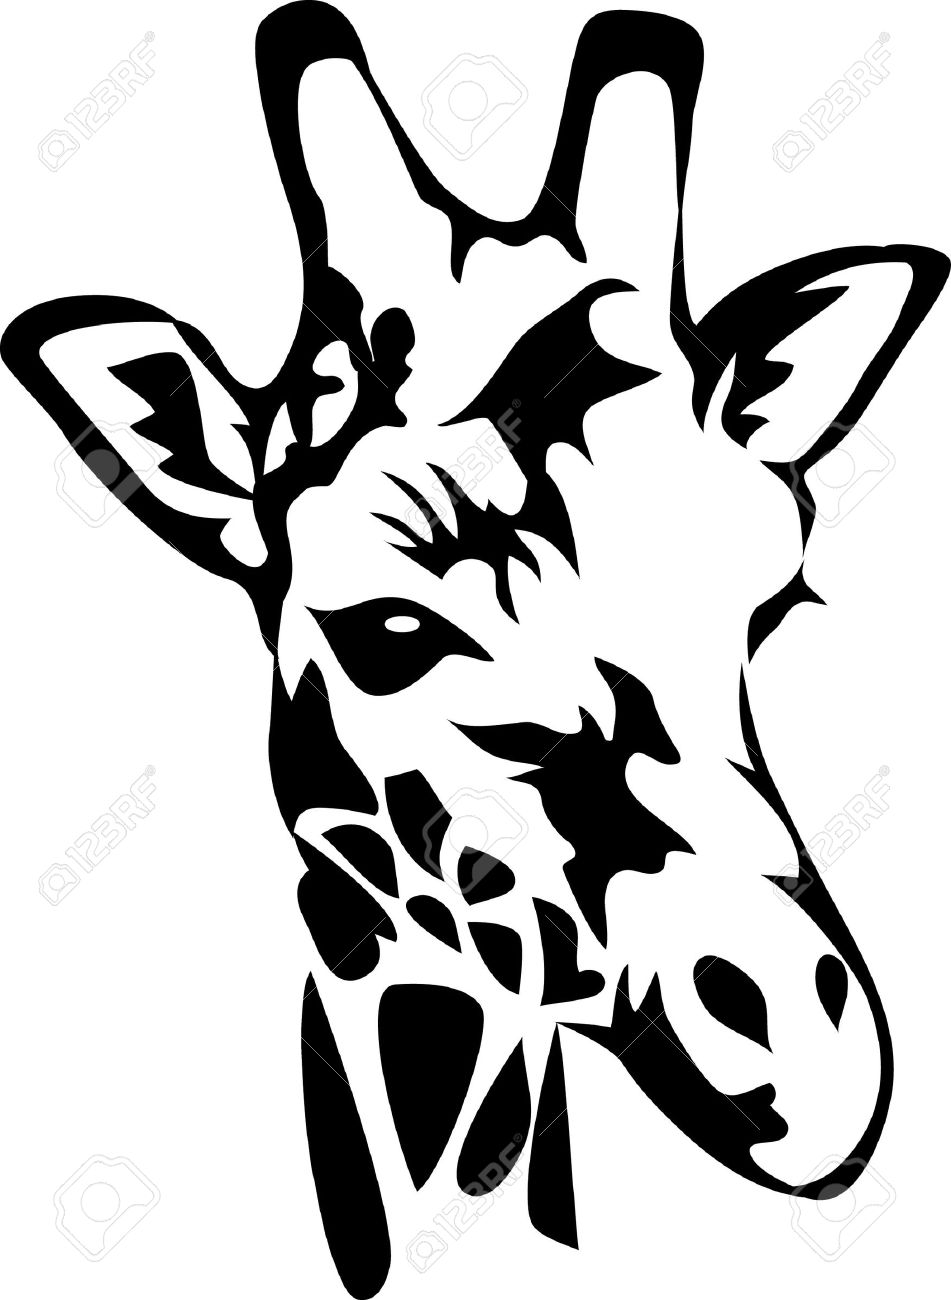 951x1300 Head Of Giraffe Royalty Free Cliparts, Vectors, And Stock